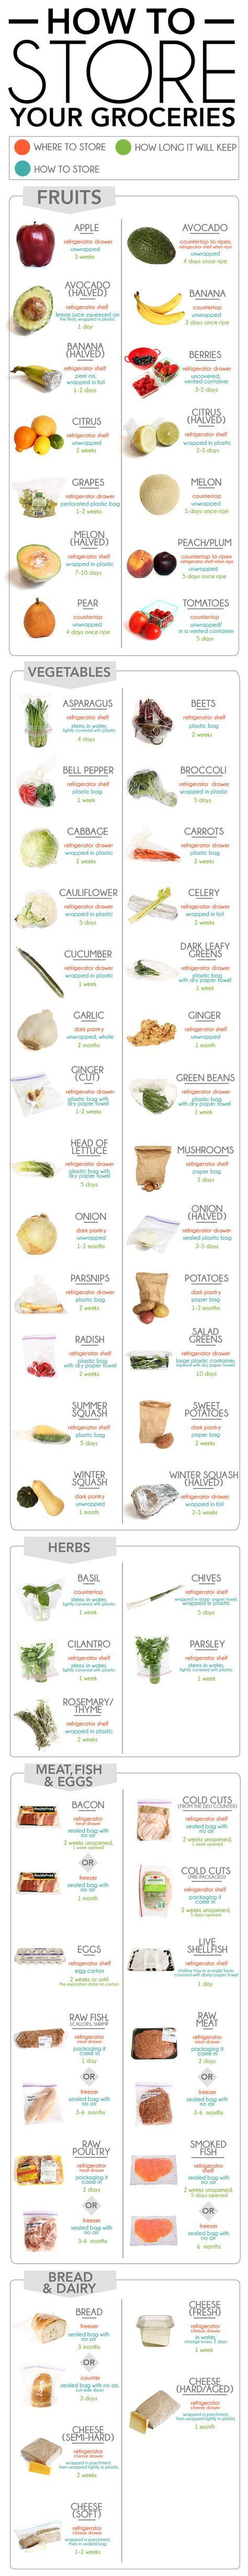 <b>Everything you need to know about where and how to store the food in your kitchen.</b>